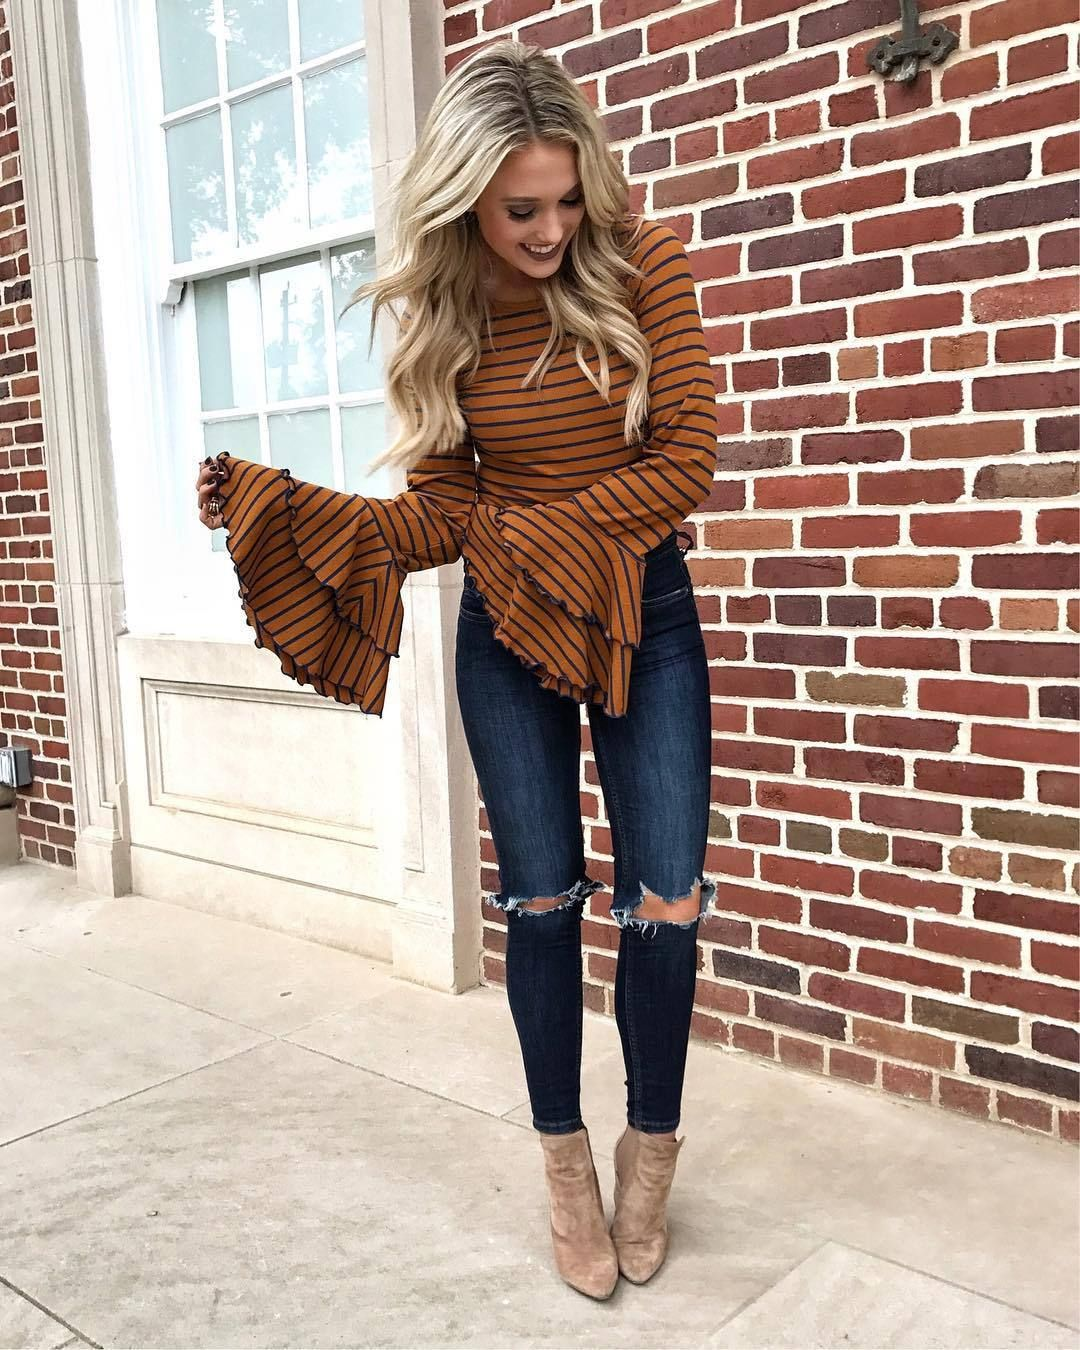 Pin By Janina Roldan On Stylin Cute Winter Outfits Fashion Fall Outfits